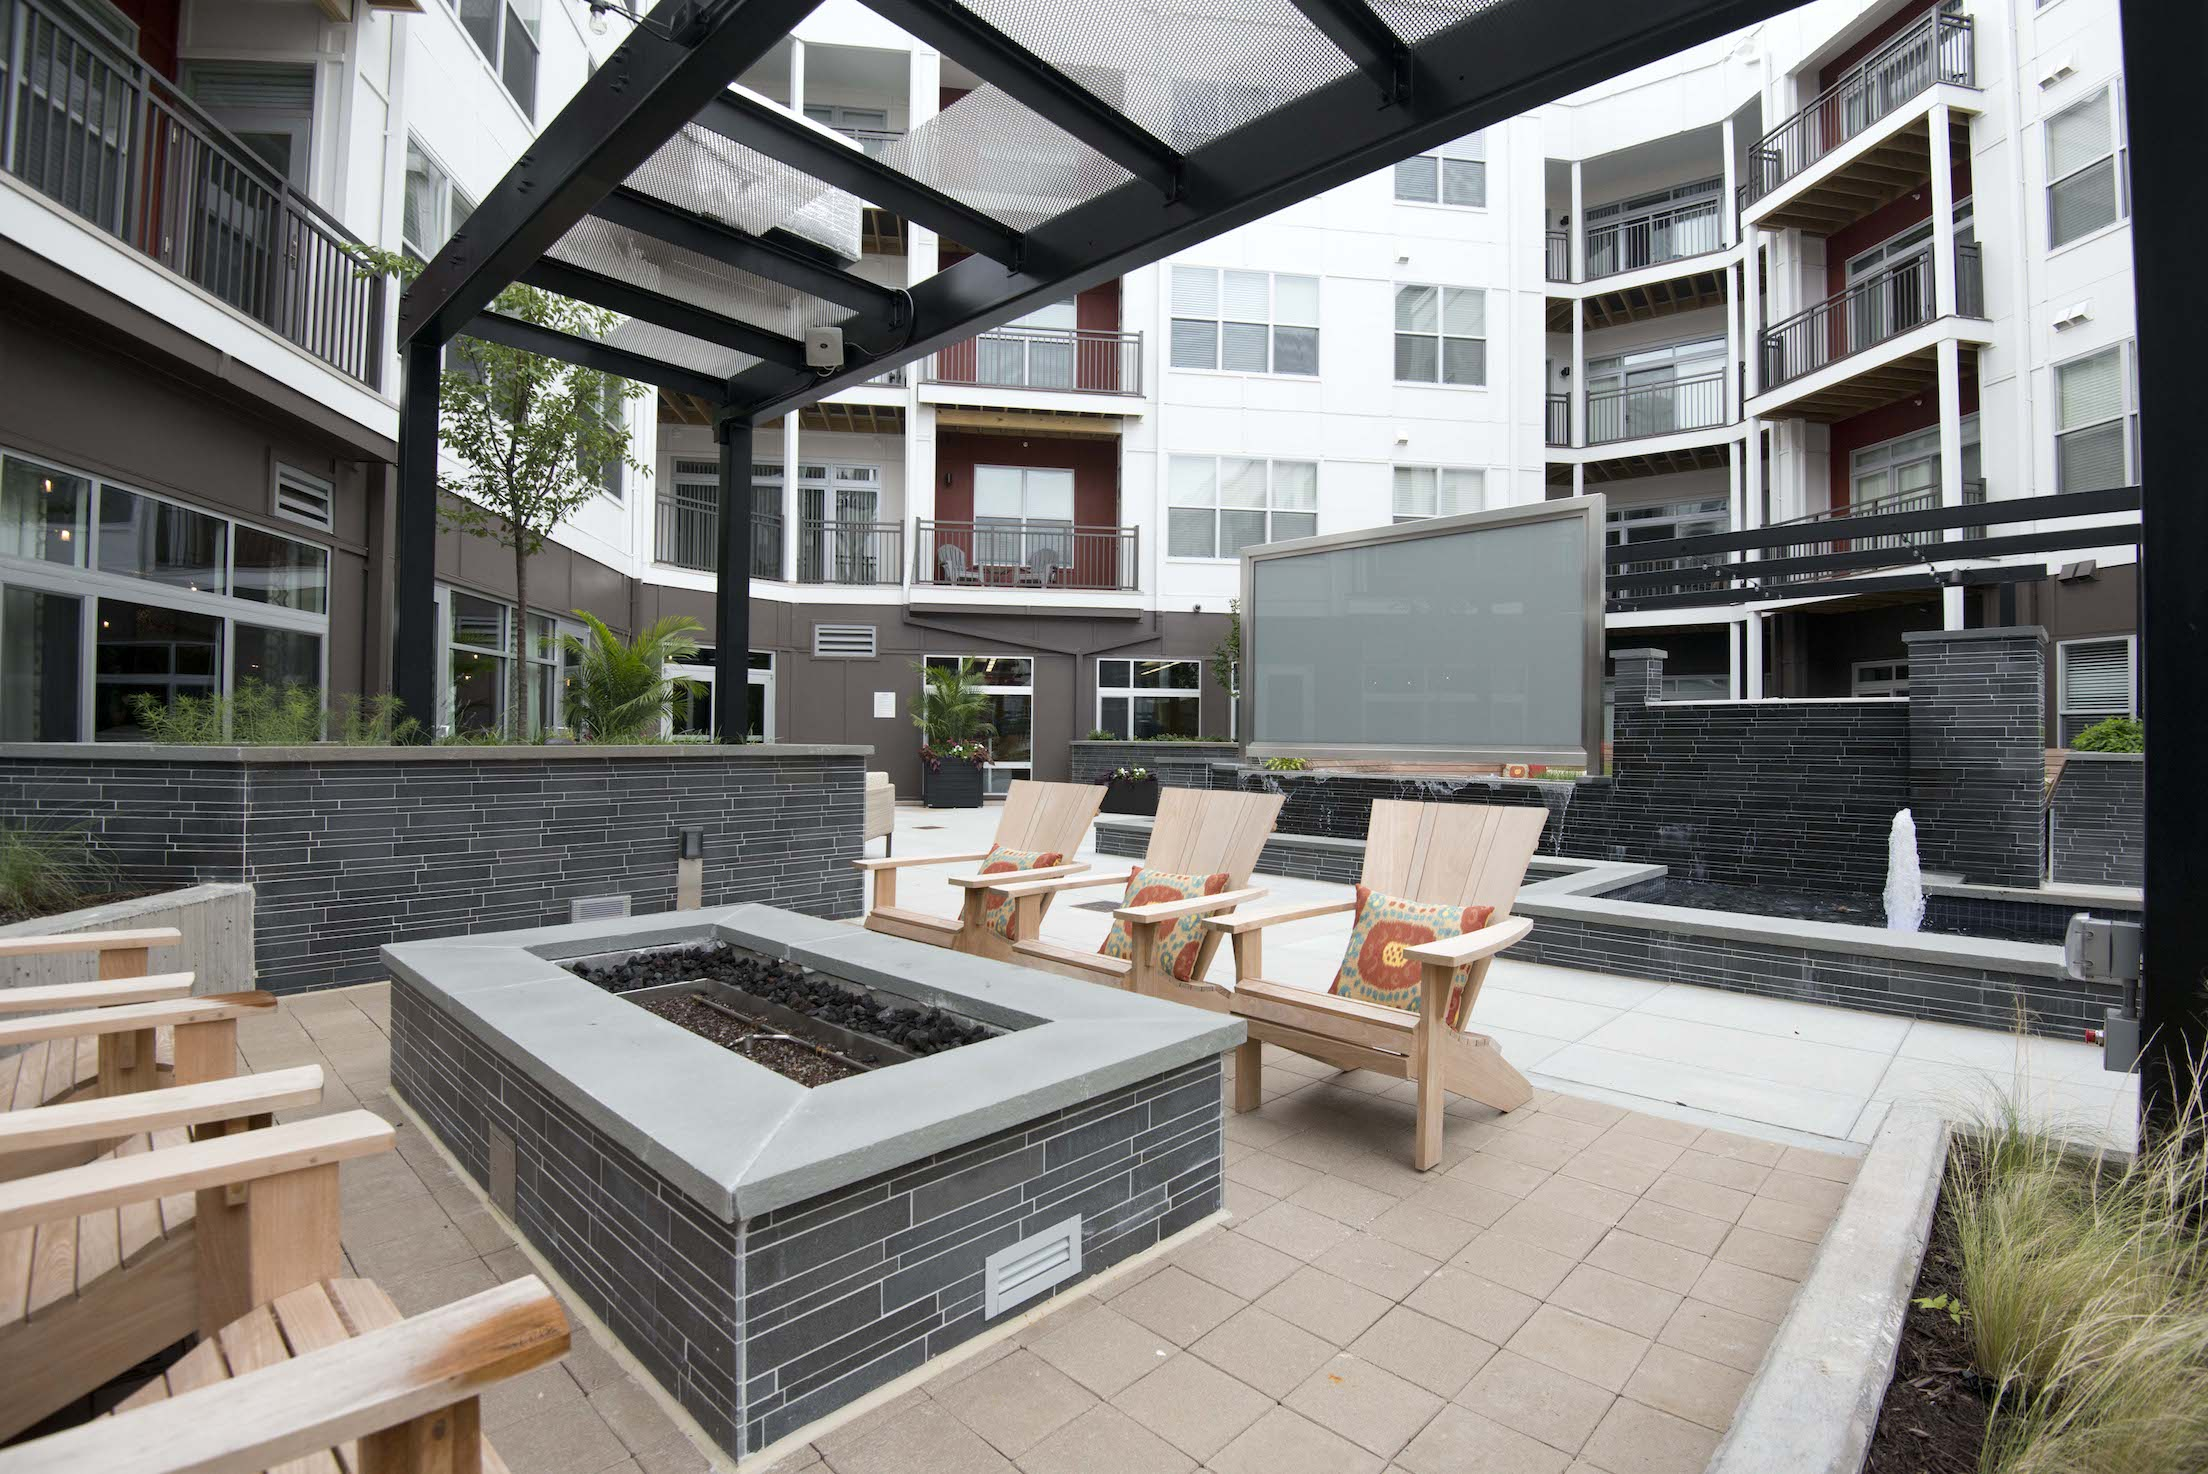 Grey Basalt Interlocking Tile - Landbay J - Washington DC - Firepit